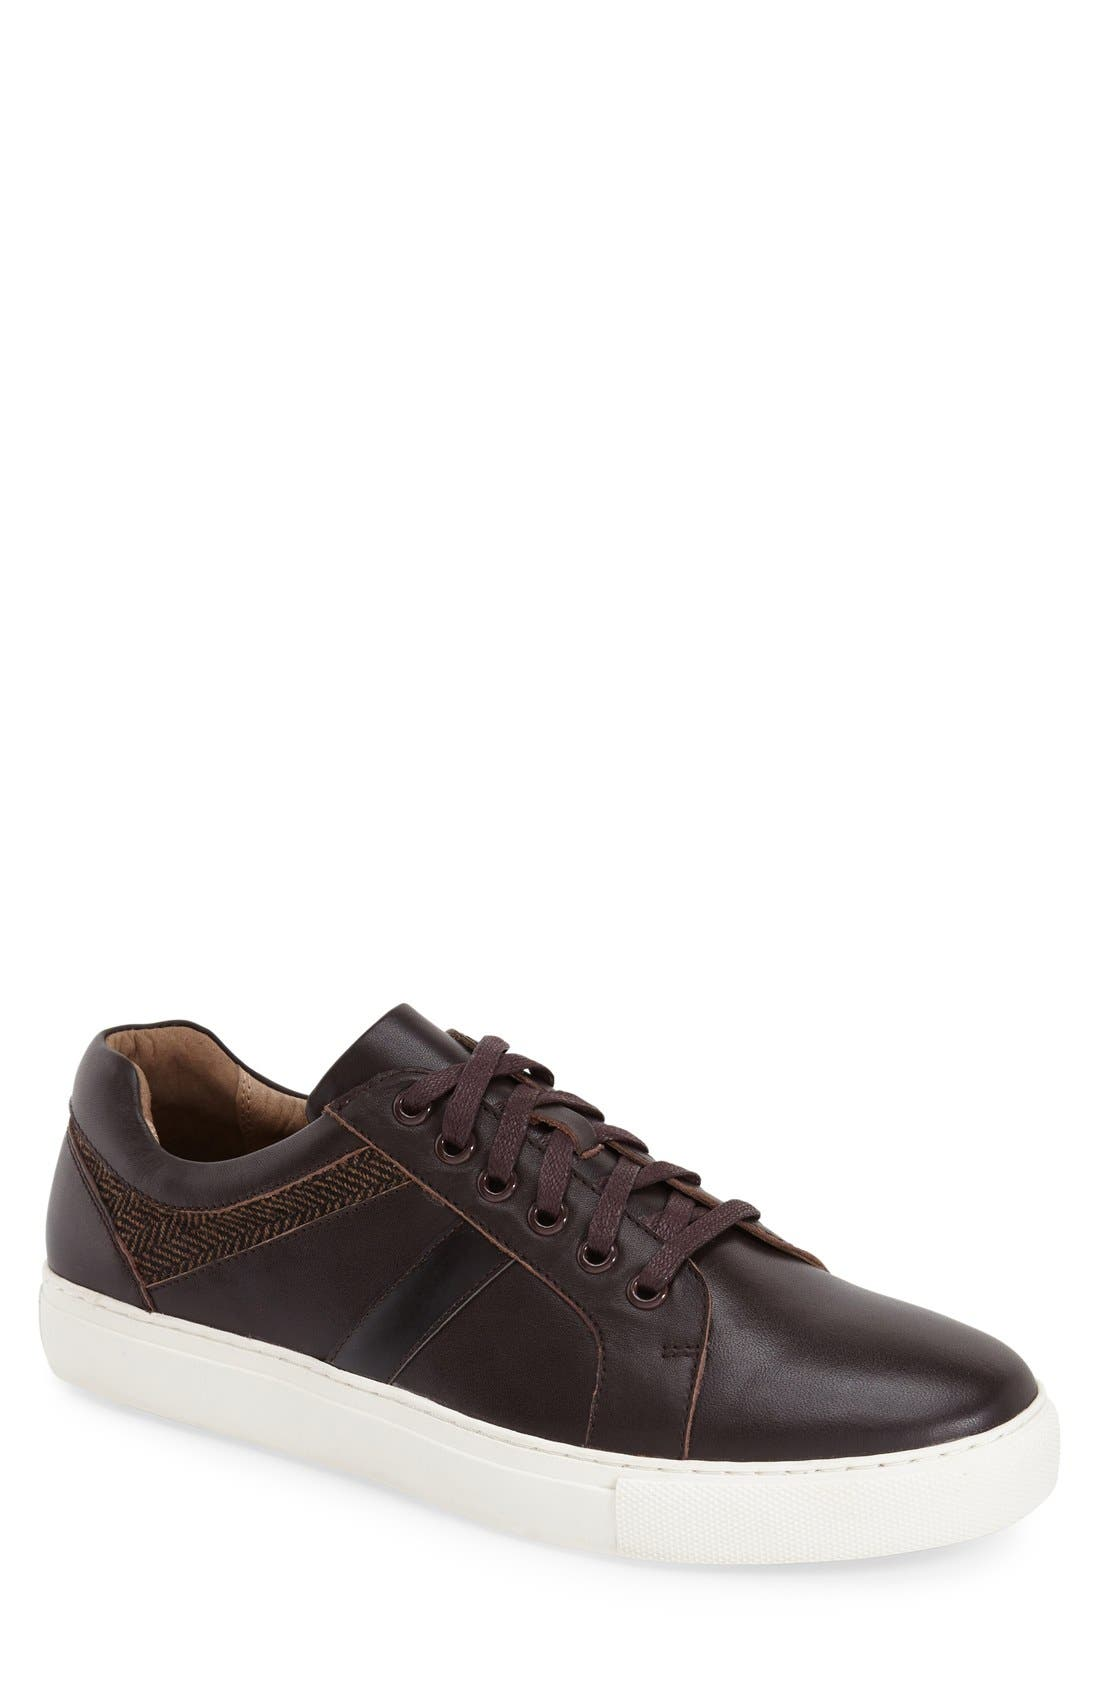 'Mixer' Sneaker,                         Main,                         color, Brown Leather